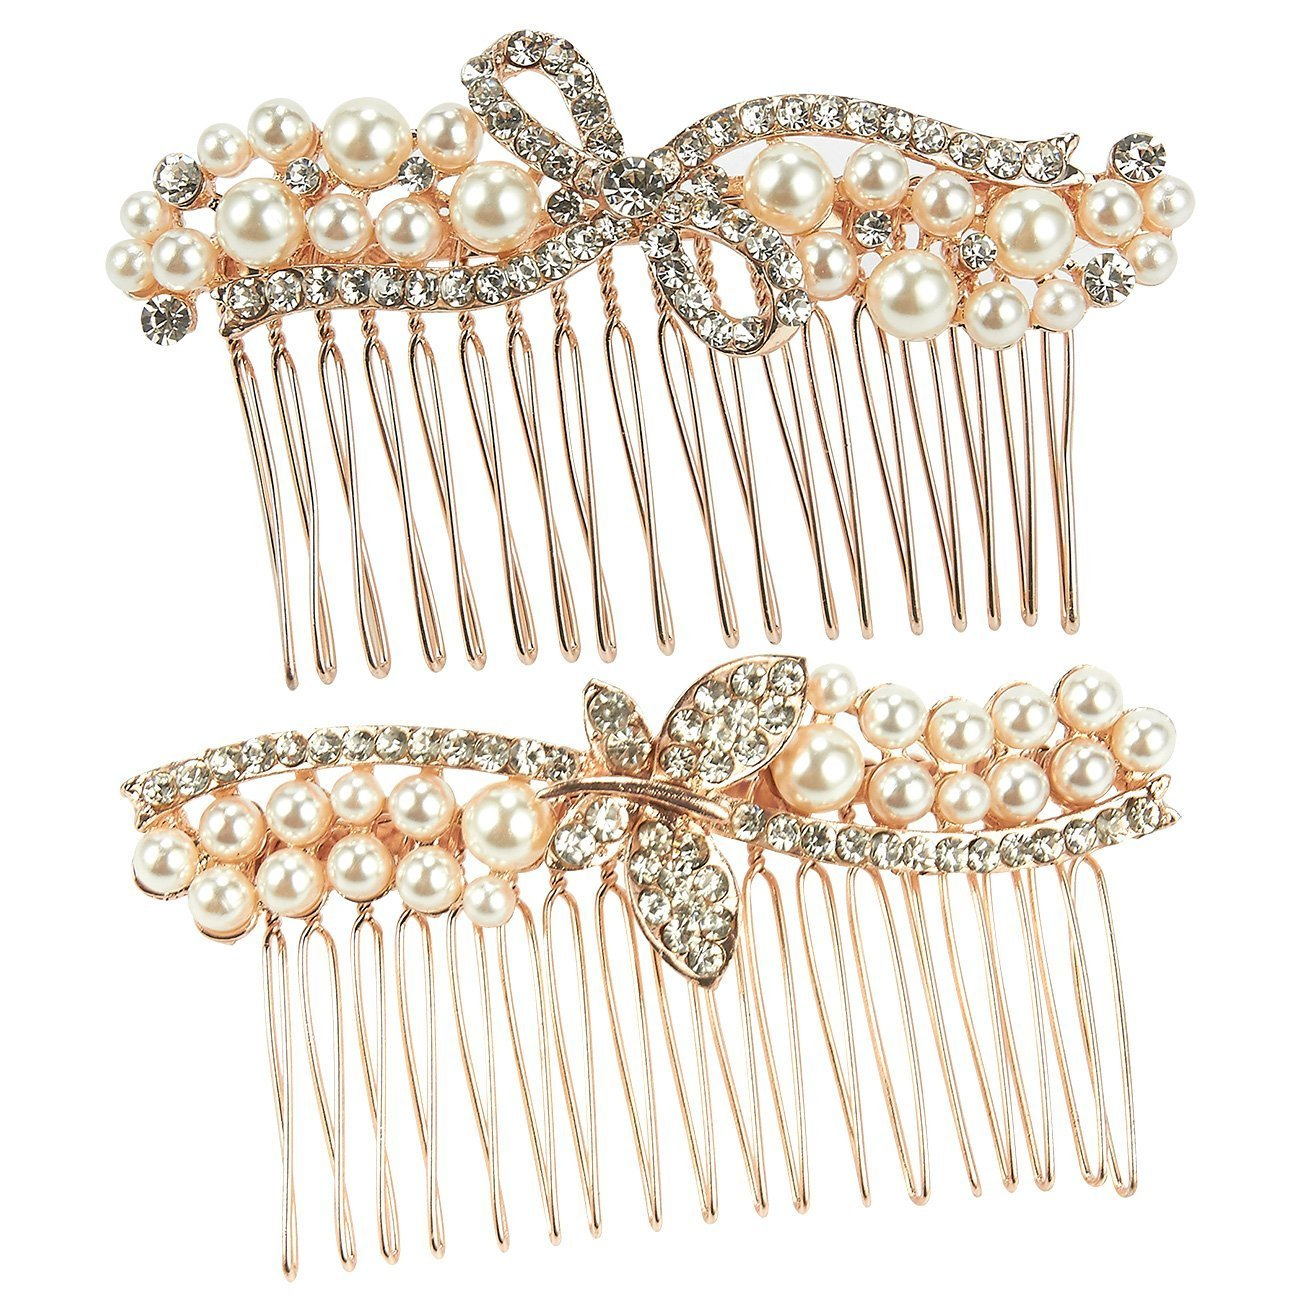 Vintage Rhinestone Bridal Hair Pin Slide Clips Grip Barrette Diamante Wedding x2